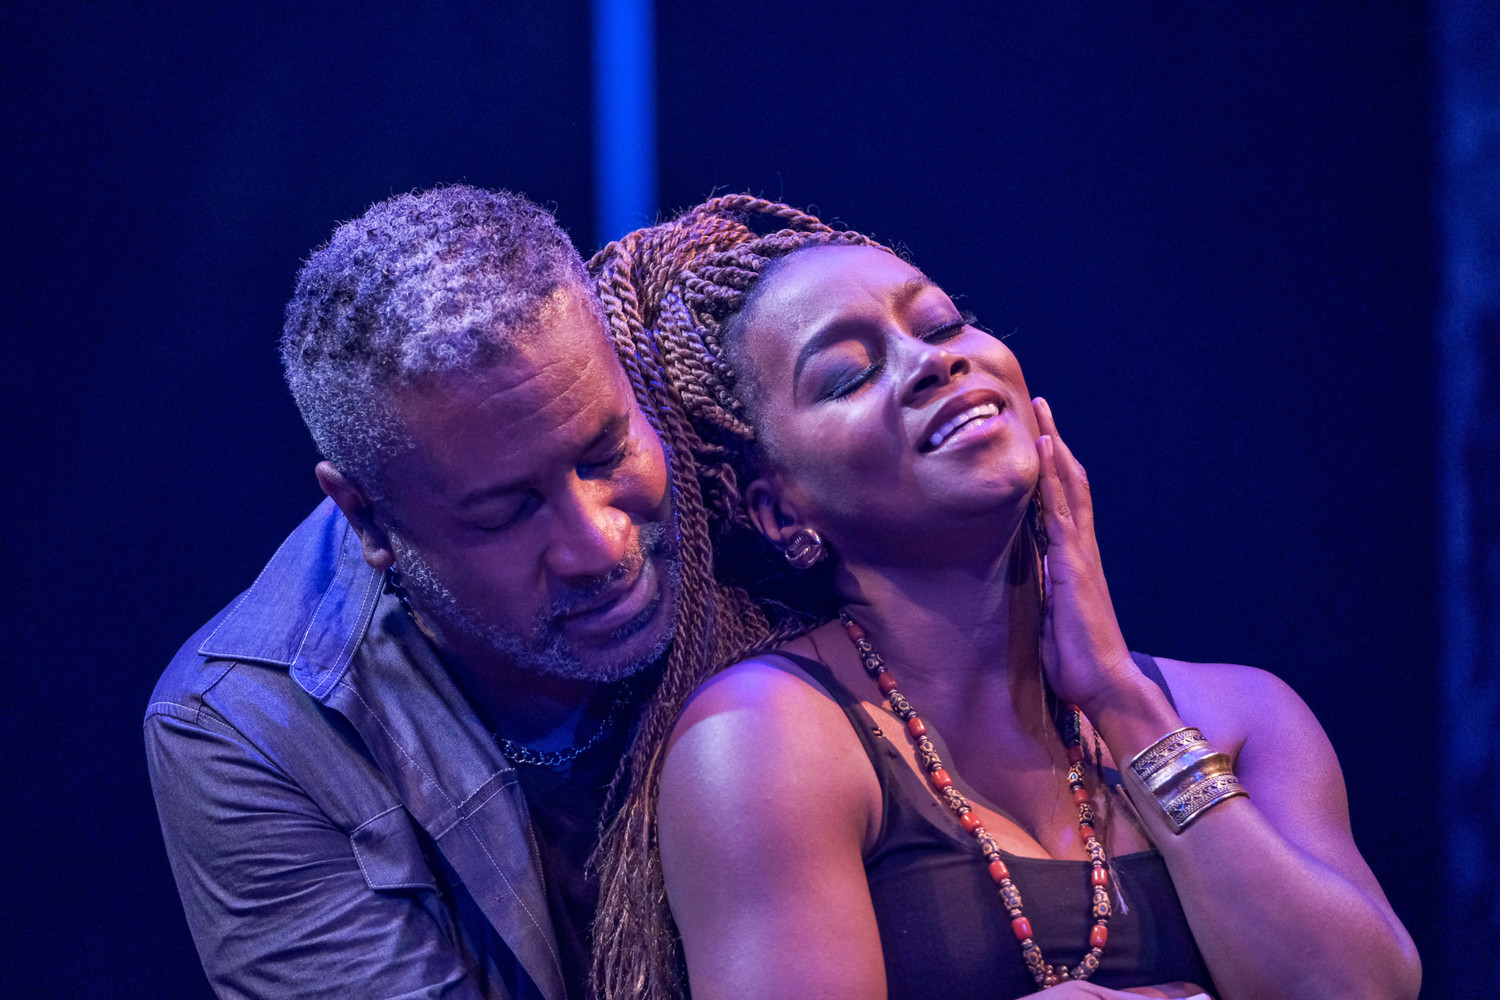 BWW Review: ZACH's THE BALLAD OF KLOOK AND VINETTE Sings with Charm and Shine